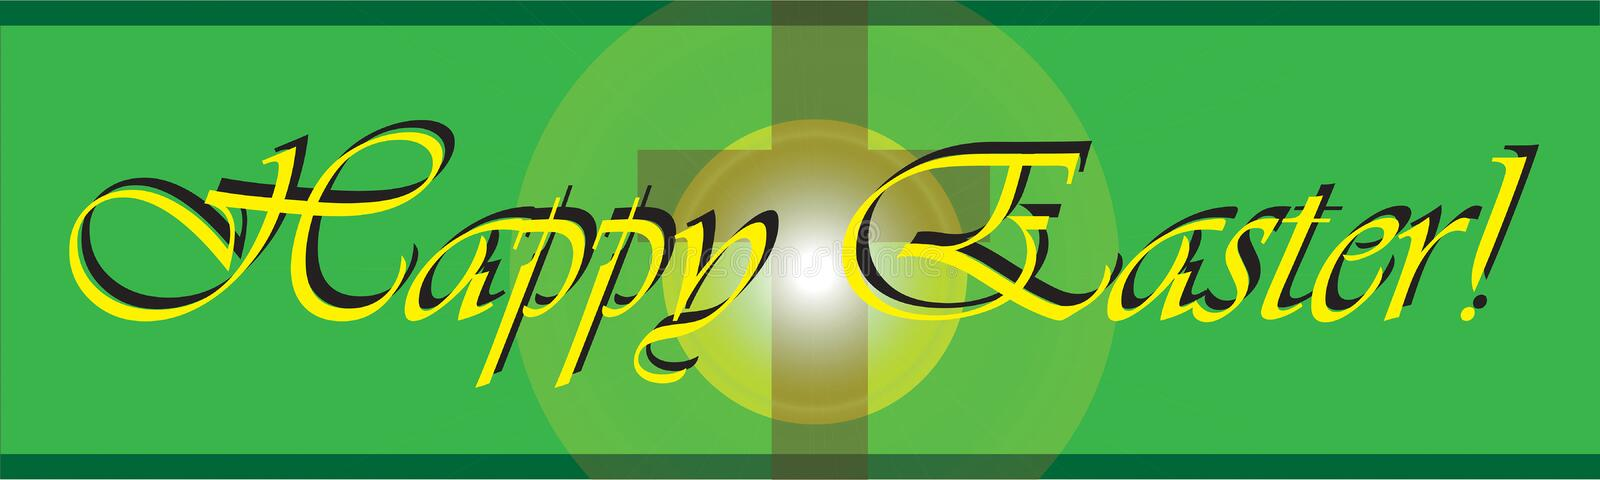 Happy Easter banner or sign with Catholic or Christian Cross stock photography